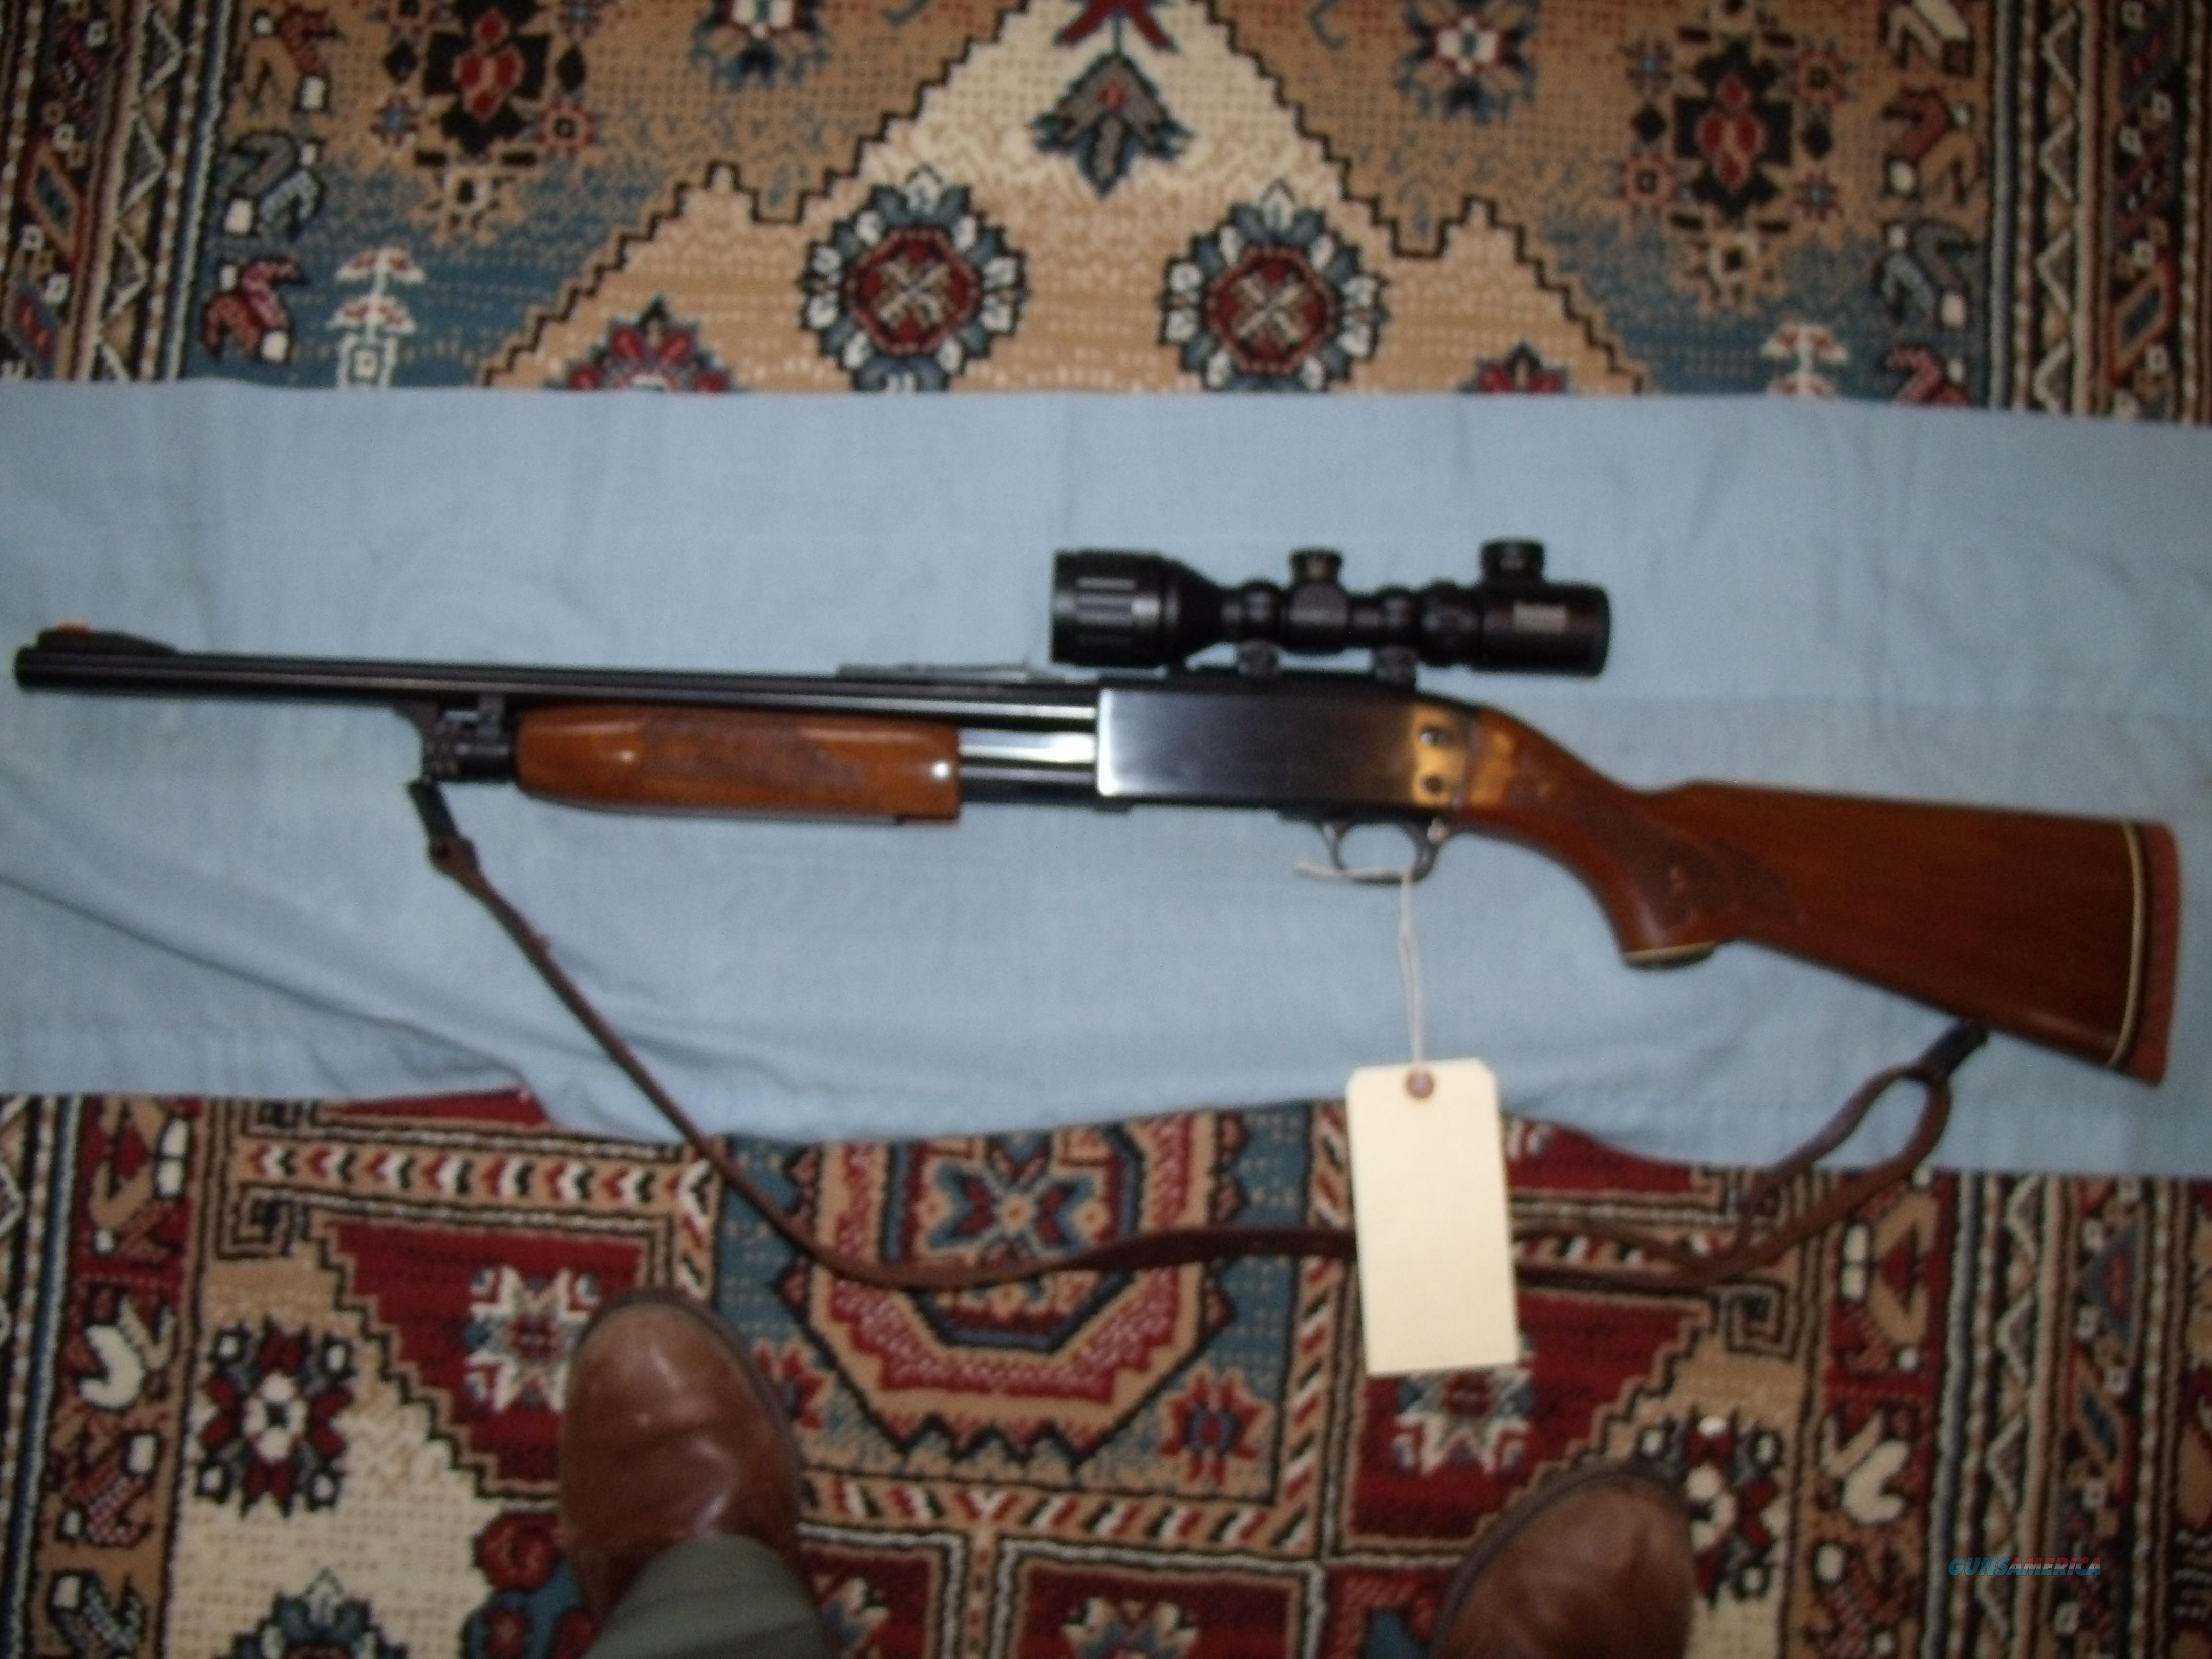 ITHACA DEERSLAYER MODEL 37 ,  12g  Guns > Shotguns > Ithaca Shotguns > Pump